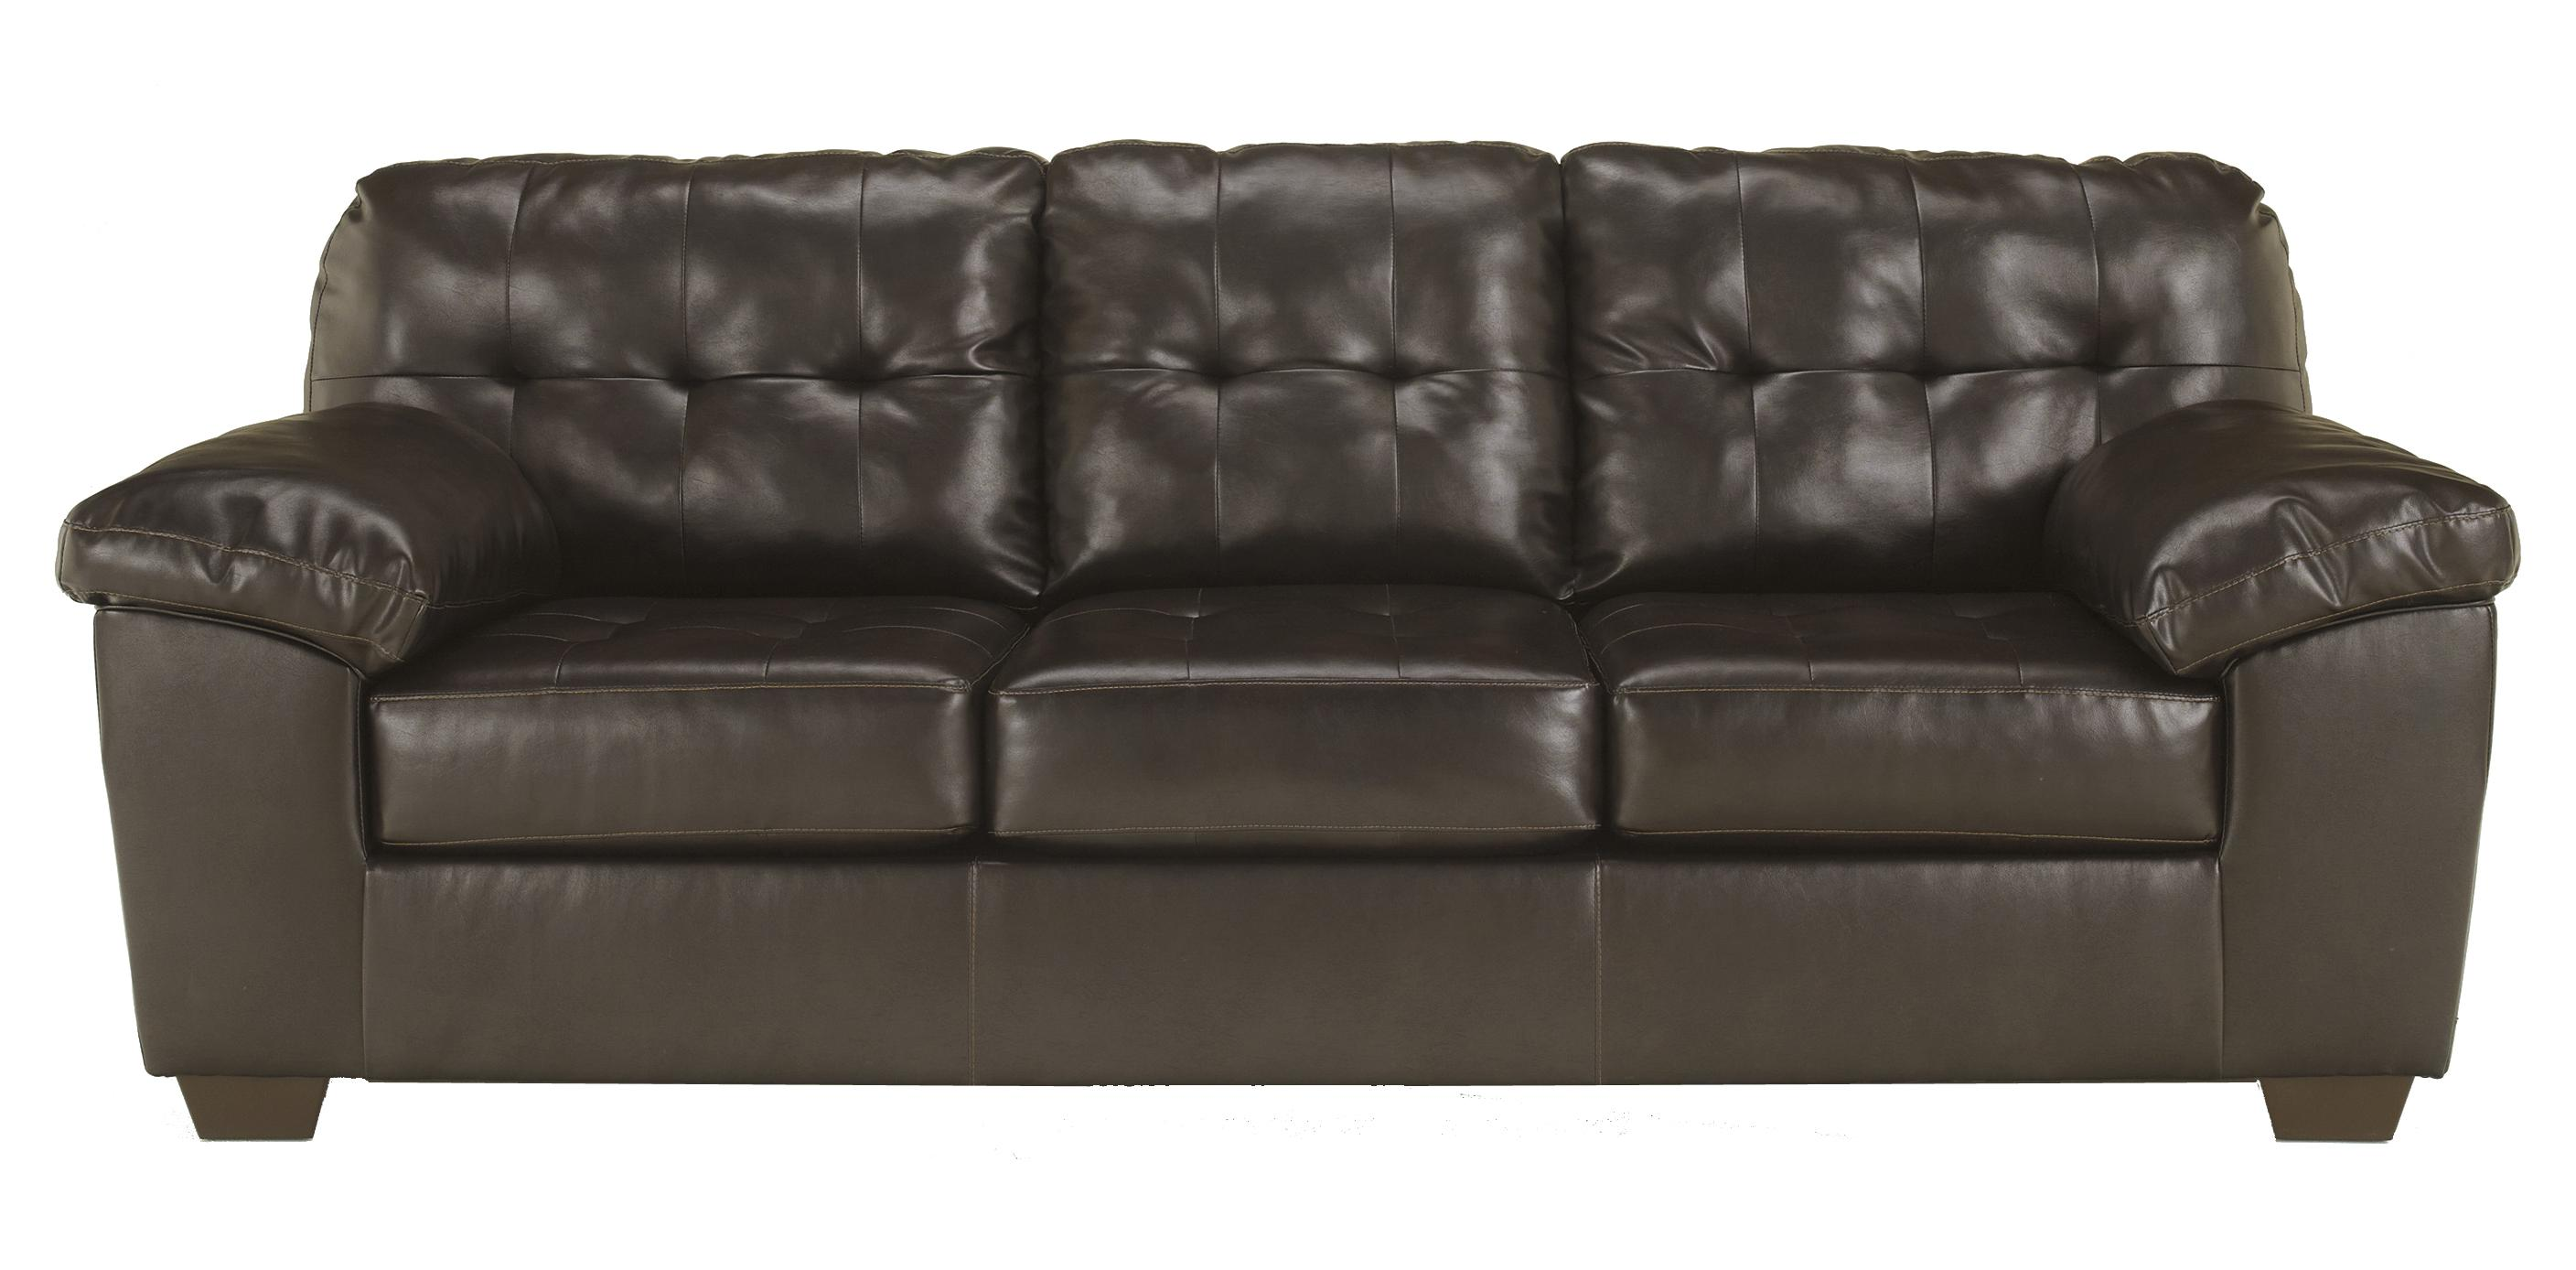 Alliston DuraBlend® - Chocolate Sofa by Signature Design by Ashley at Household Furniture